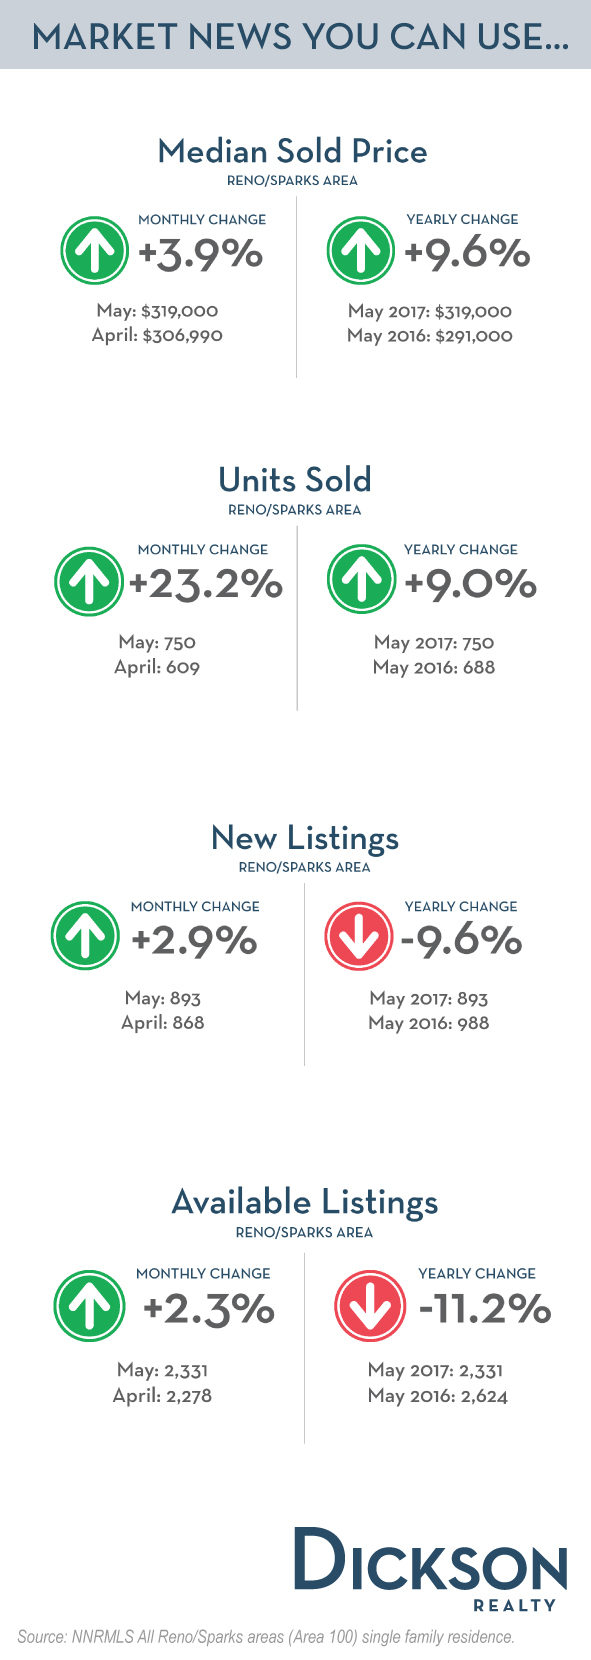 the housing market: why april, may and june is the ideal time to sell your house Best time to sell a house in aurora: june aurora follows denver's suit with low sale prices in the winter, but aurora's worst month is january while denver's is december break out summer flowers and open house signs because june was the best time to sell in aurora in 2016.